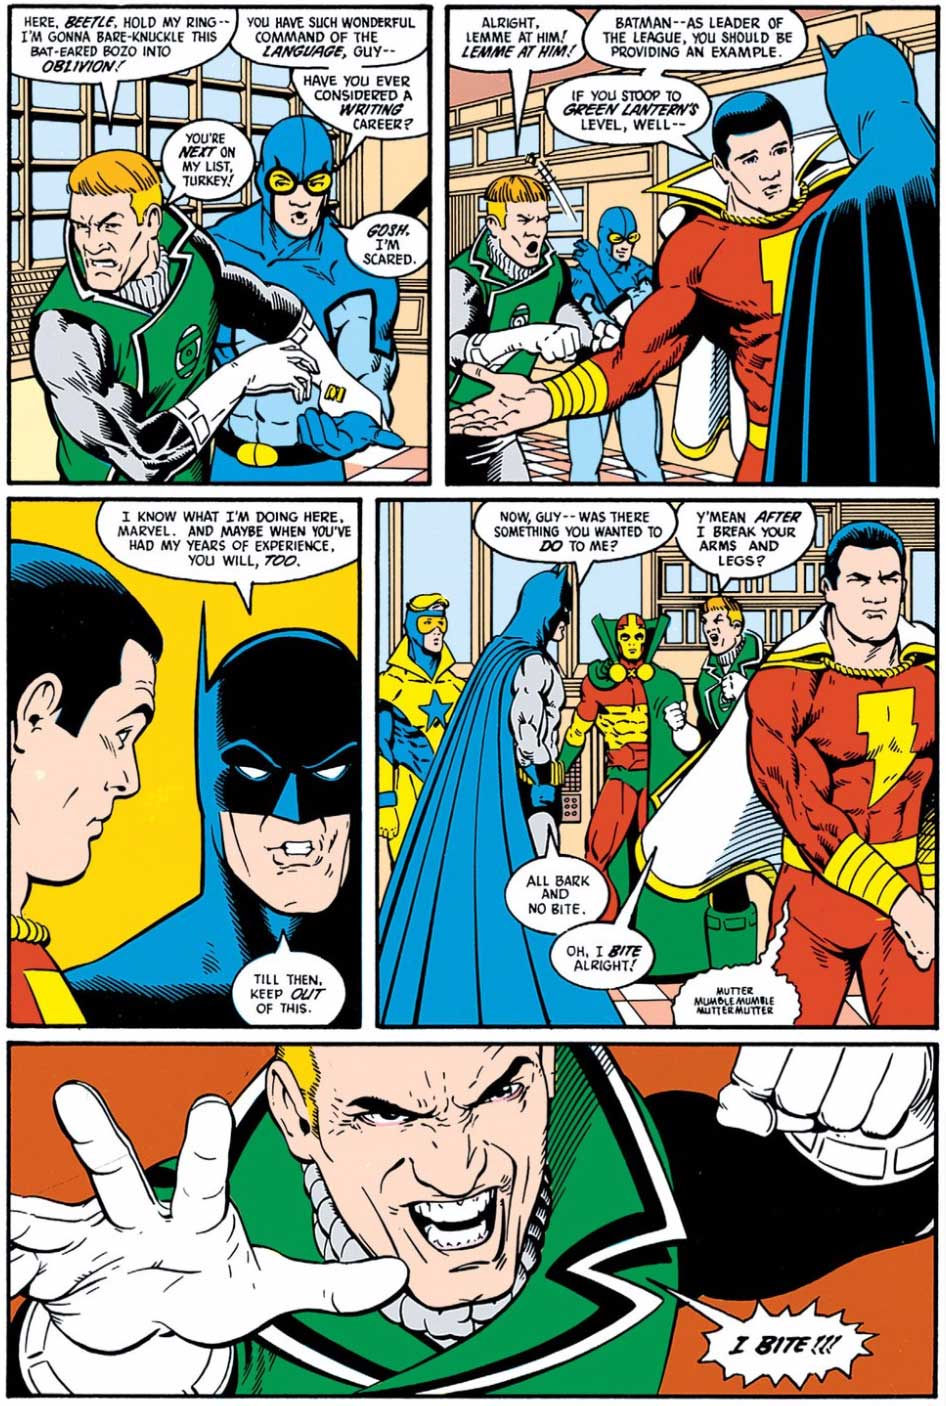 Justice League #5 One Punch by Keith Giffen, J.M. DeMatteis, Kevin Maguire and Al Gordon